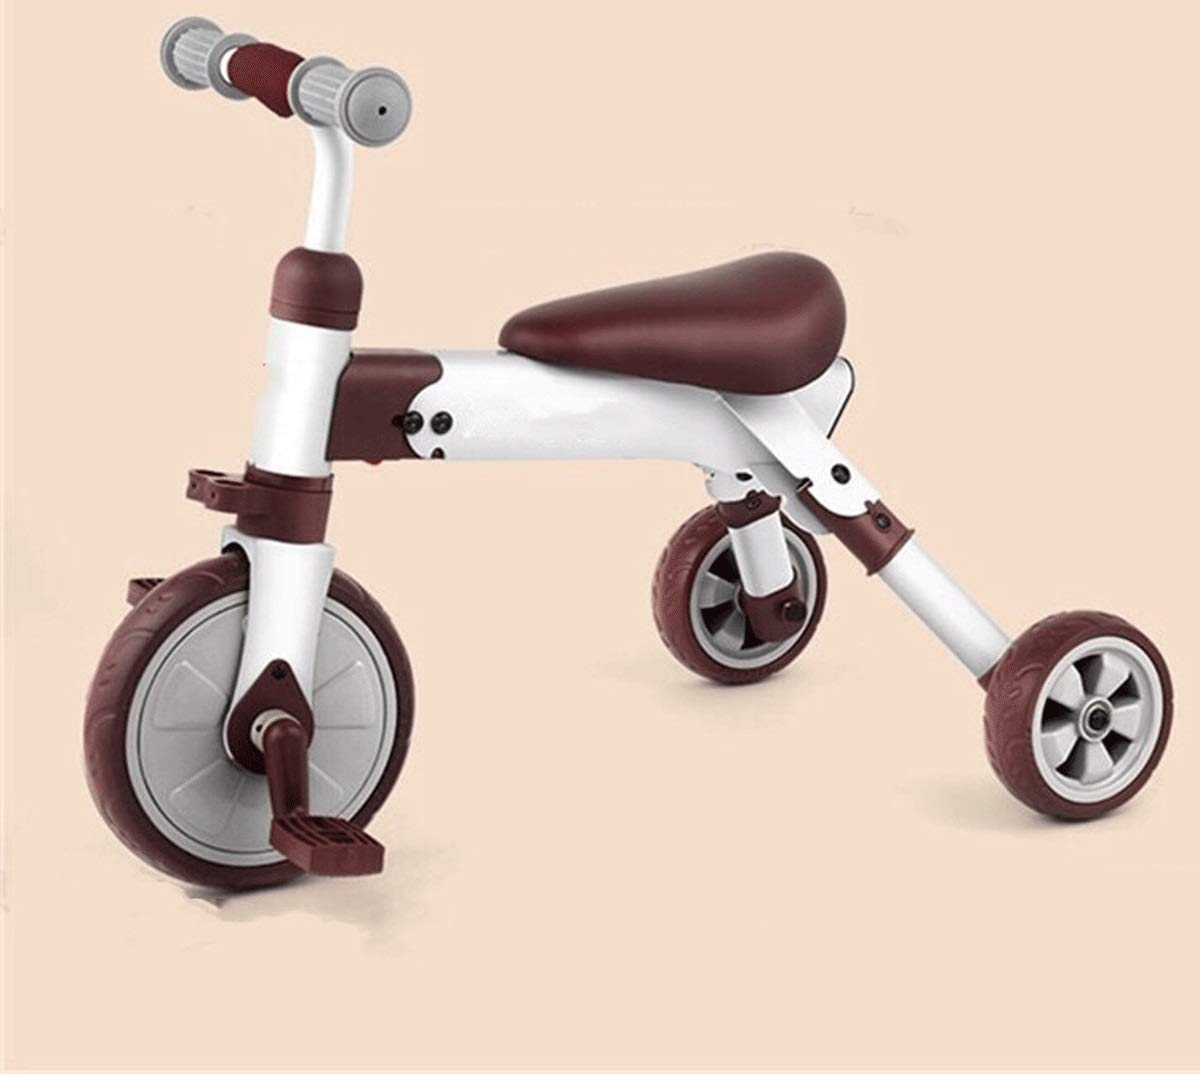 Baianju Folding Children's Tricycle Baby Children's Pedal Scooter Toy Bicycle Toy Yo Car